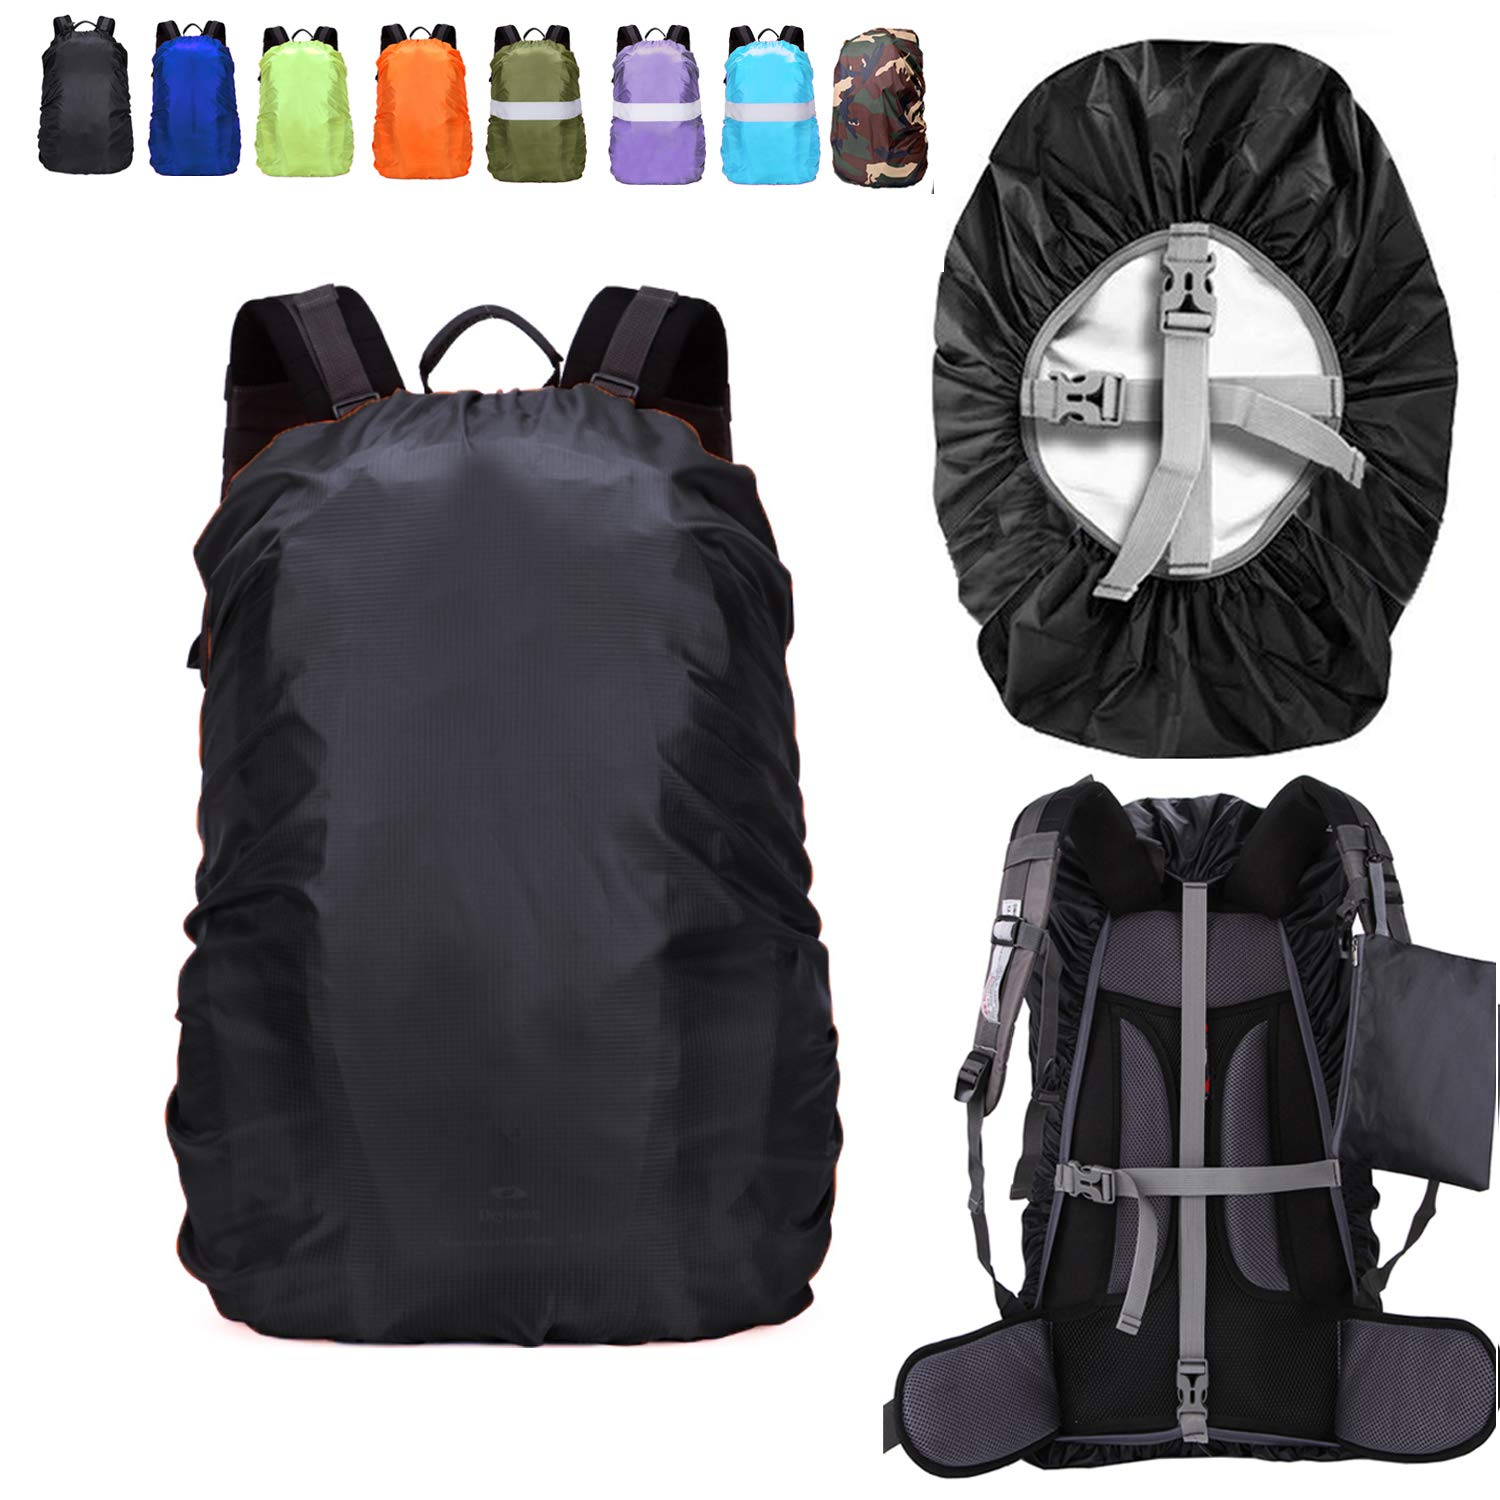 ZM-SPORTS 15-90L Upgraded Waterproof Backpack Rain Cover,with Vertical Adjustable Fixed Strap Avoid to Falling,Gift with Portable Storage Pack (Black, XL(for 50-65L Backpack) by ZM-SPORTS